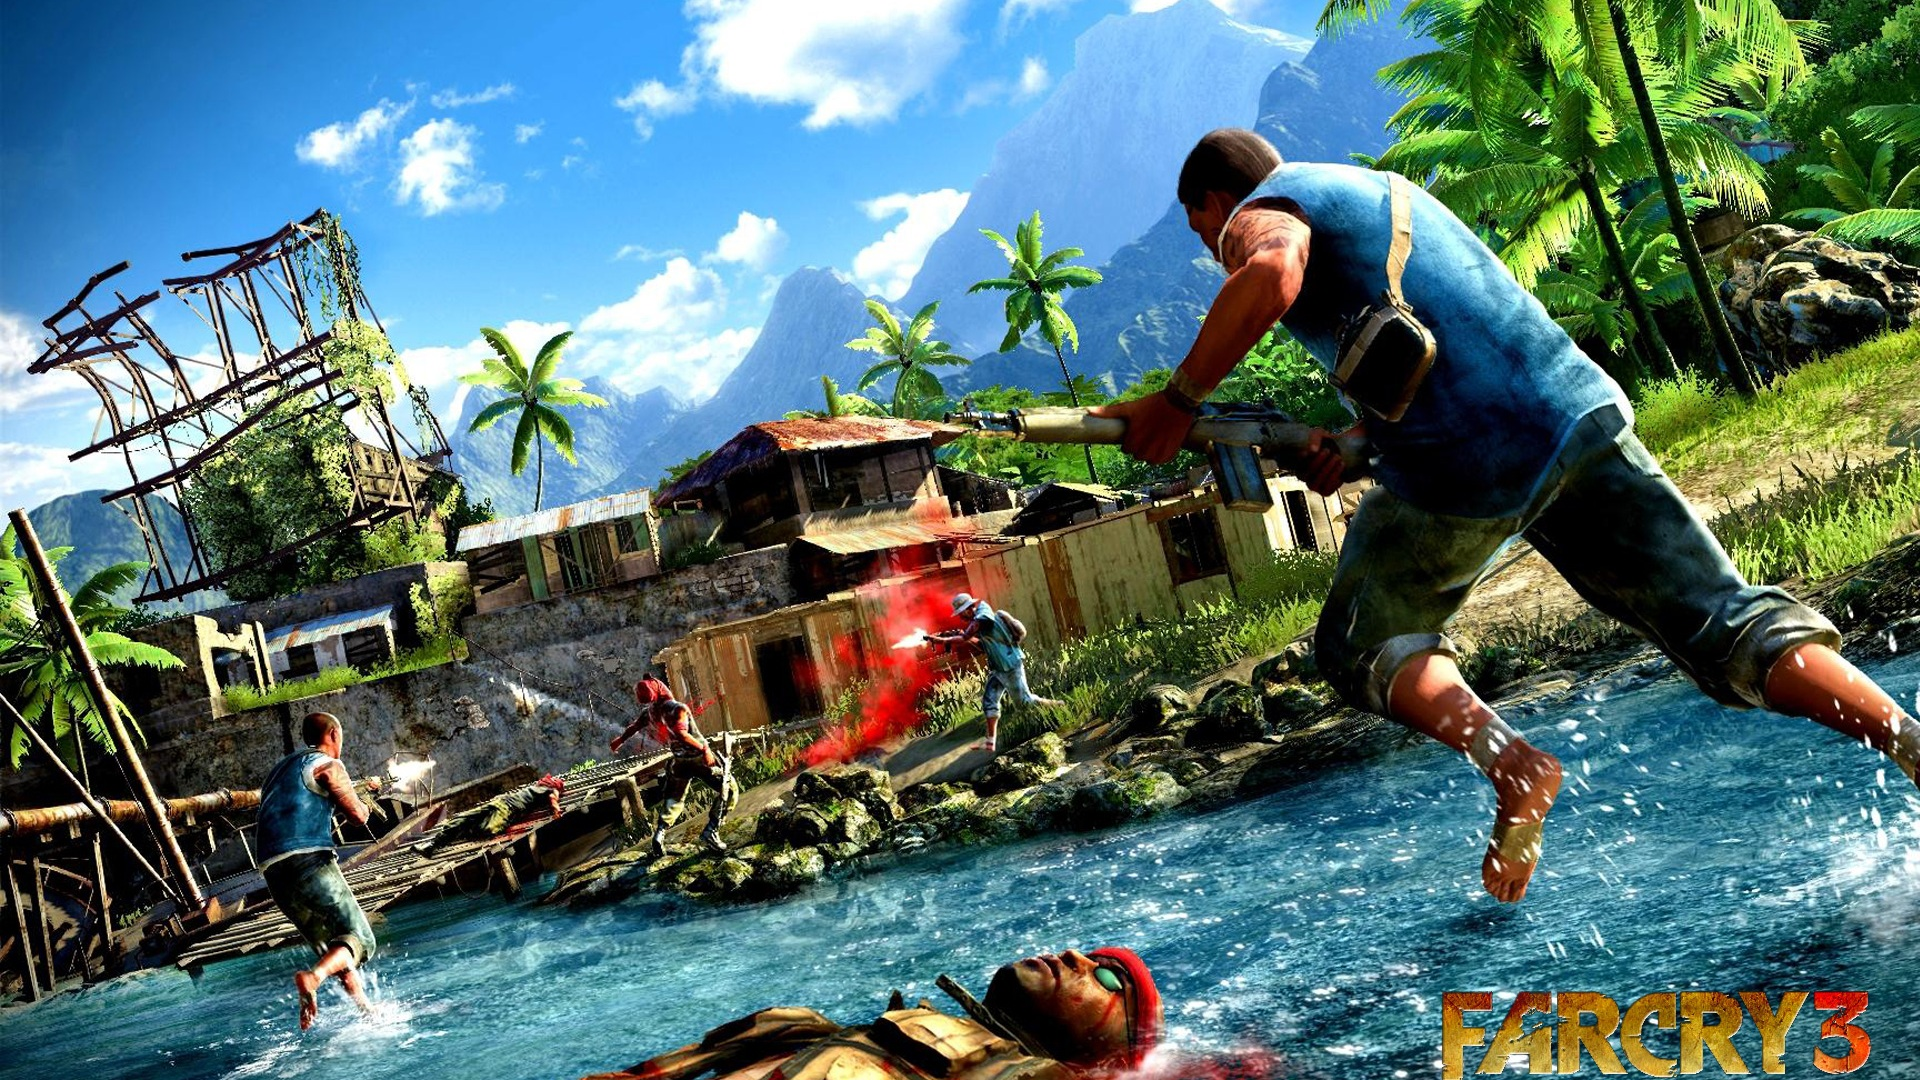 Far Cry 3 Game 2012 640x1136 Iphone 5 5s 5c Se Wallpaper